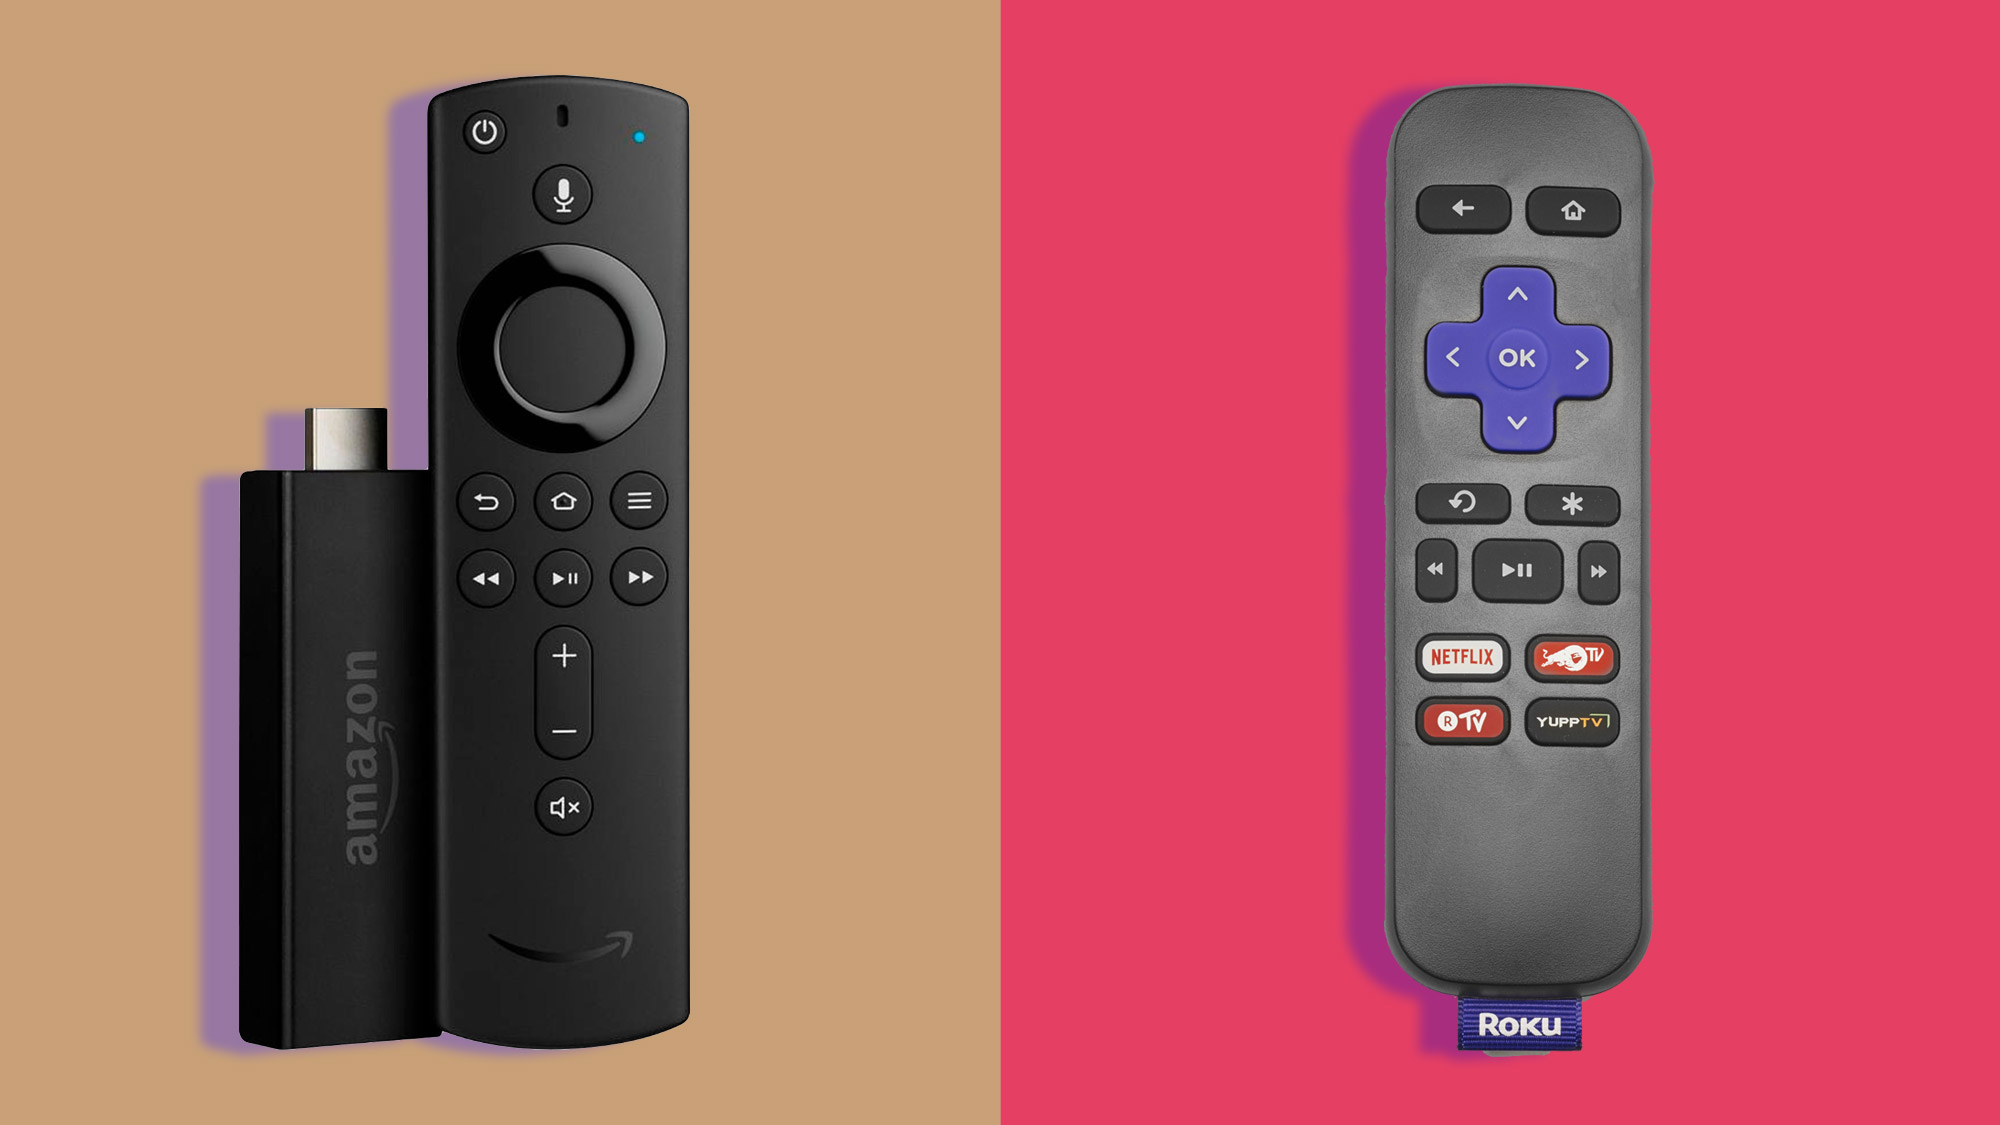 Fire TV vs Roku: Which streaming video platform is better